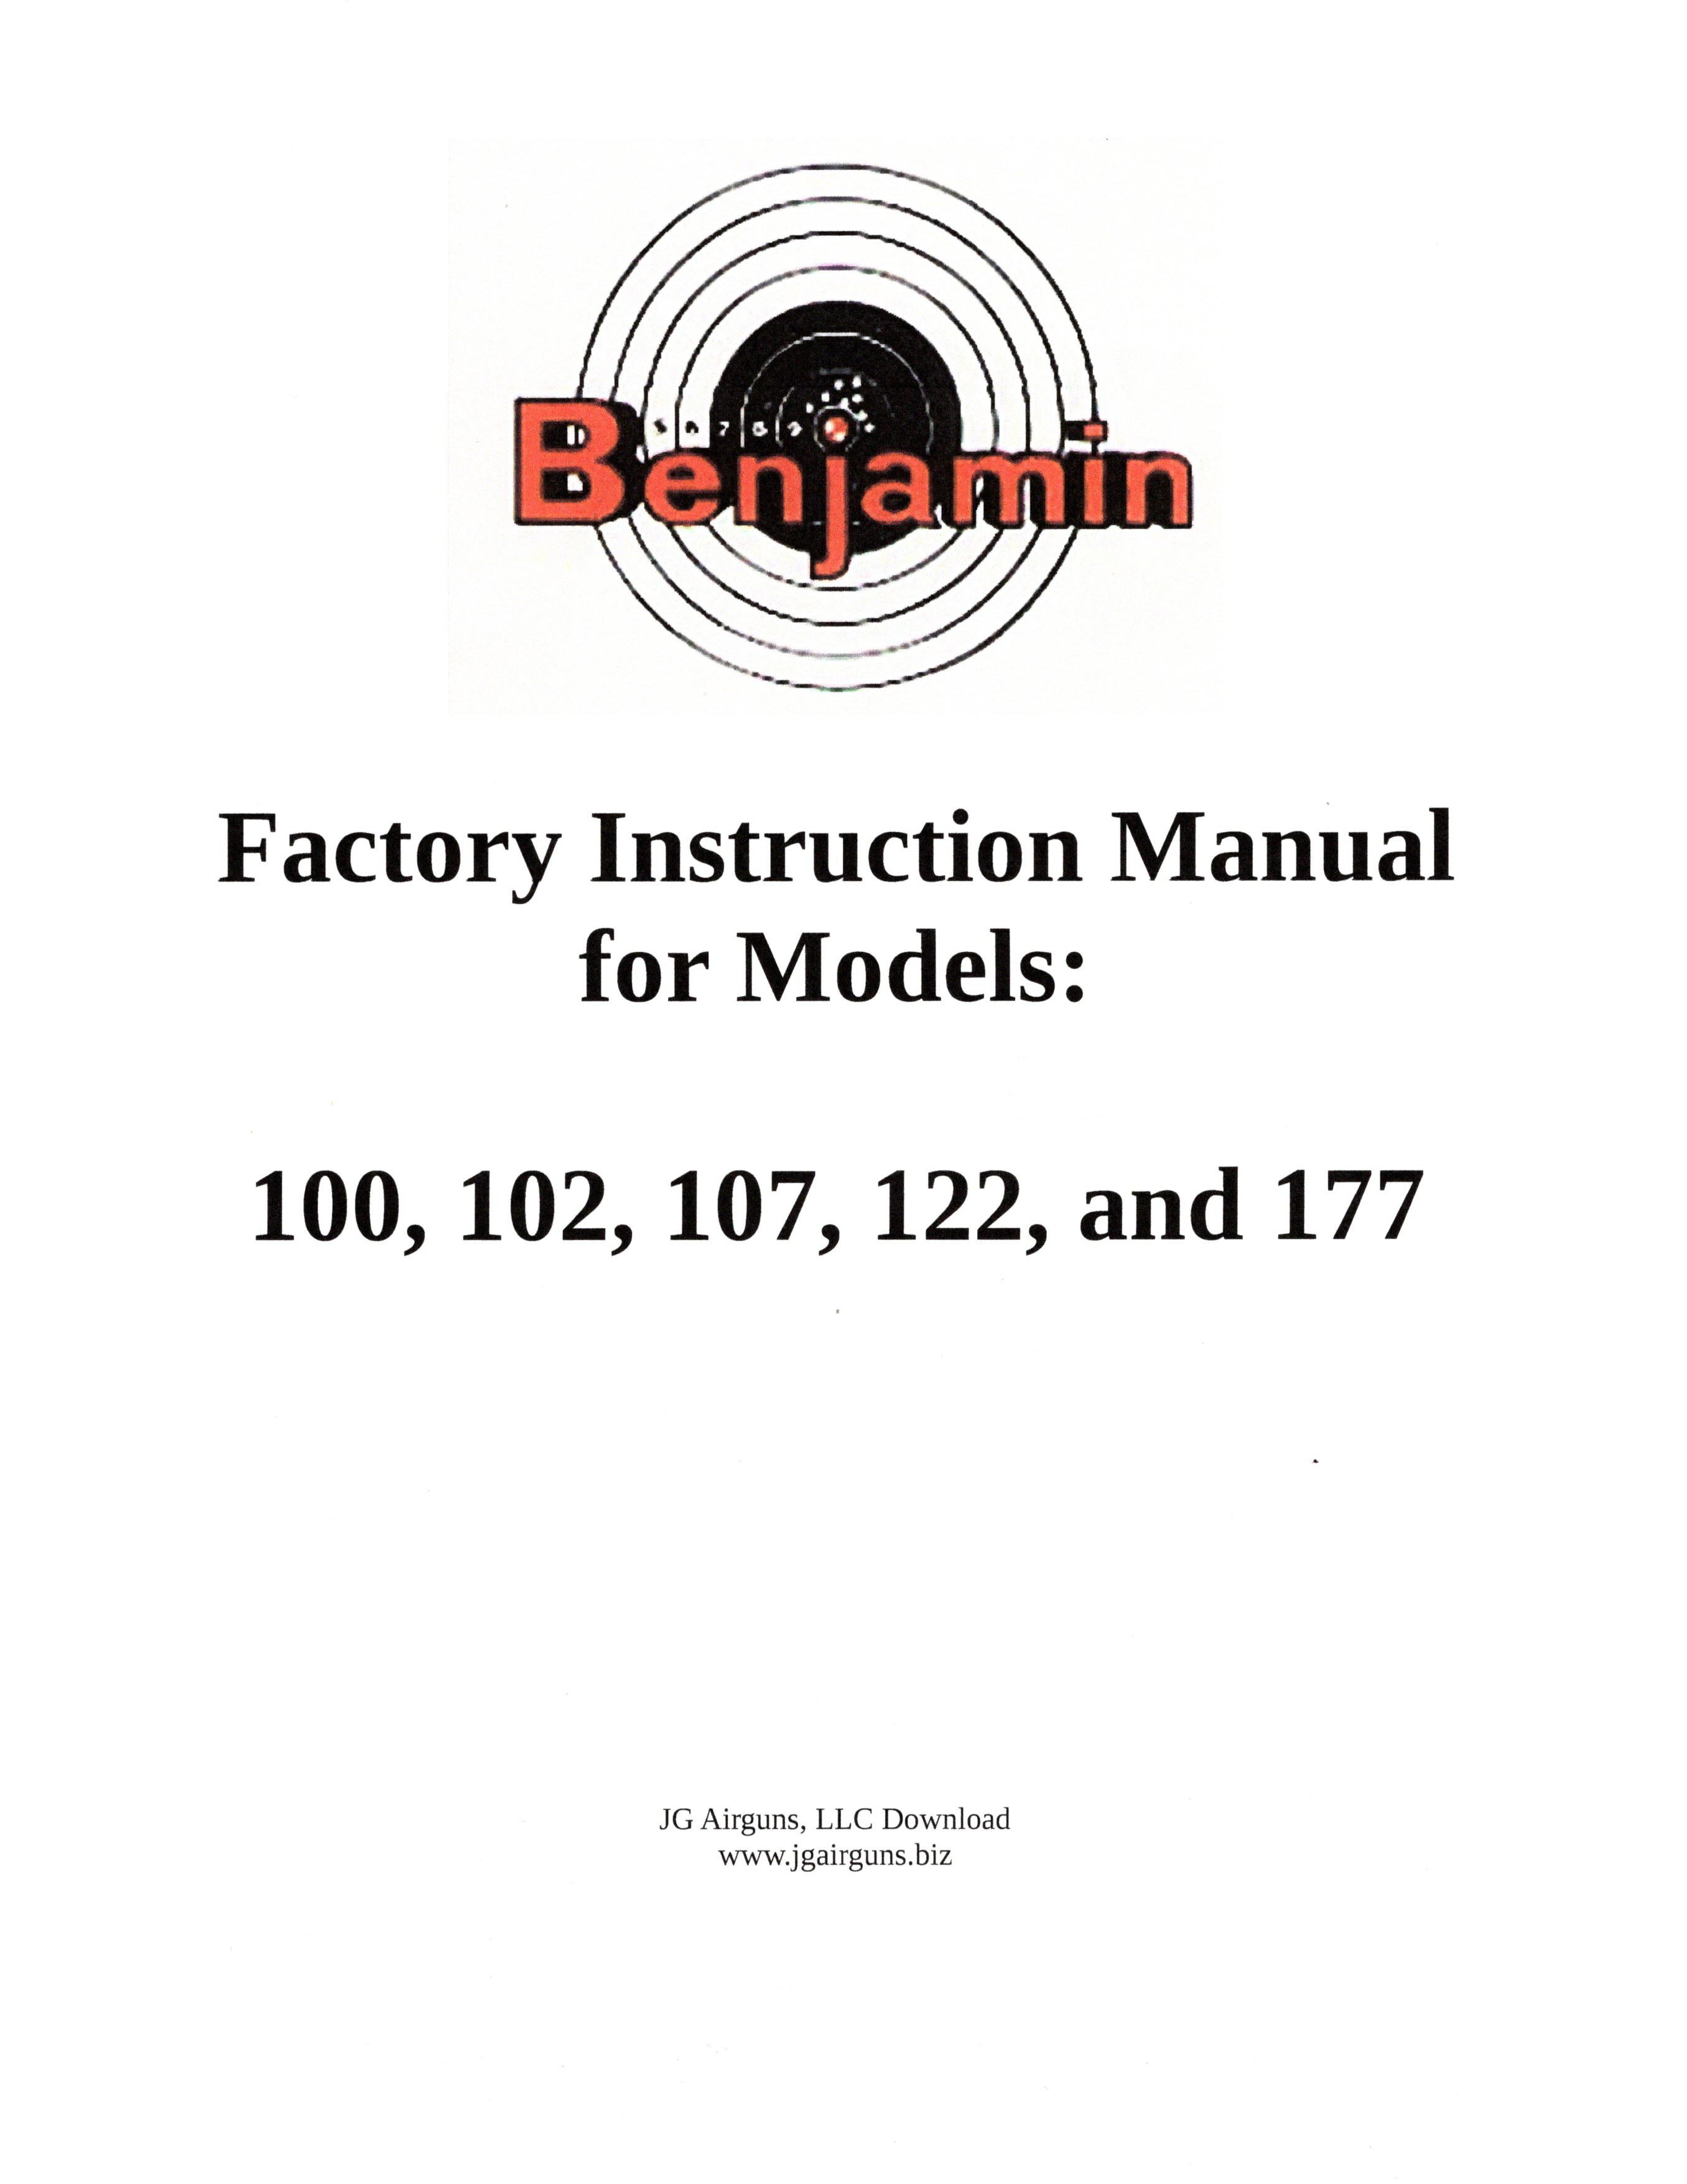 BEN100IS-1 DOWNLOAD of Benjamin Instruction Manual for models 100 Series